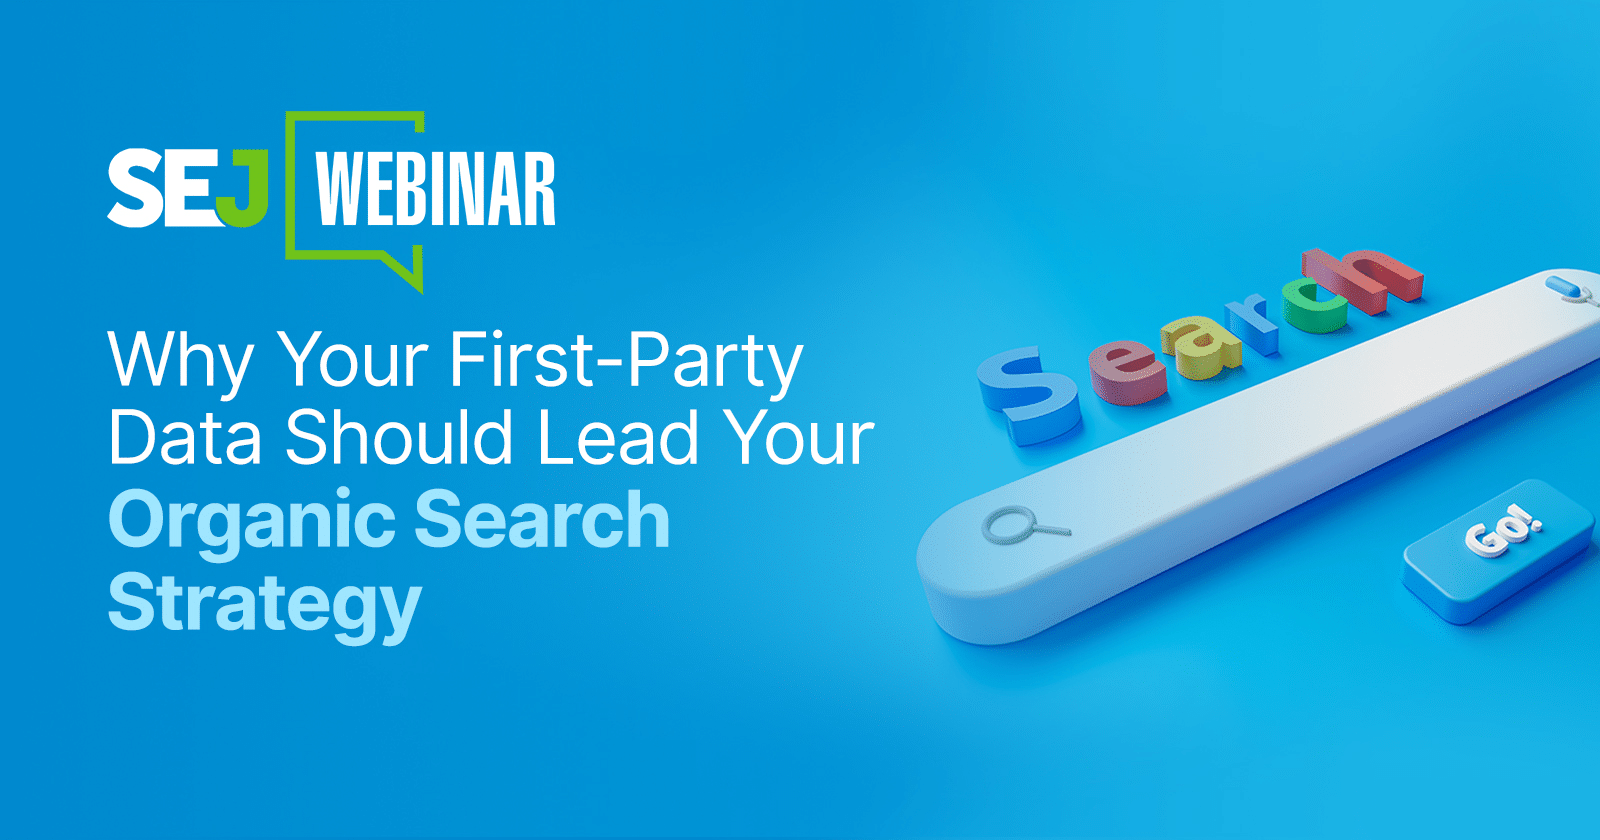 Why First-Party Data Should Lead Your SEO Strategy [Webinar] via @sejournal, @lorenbaker